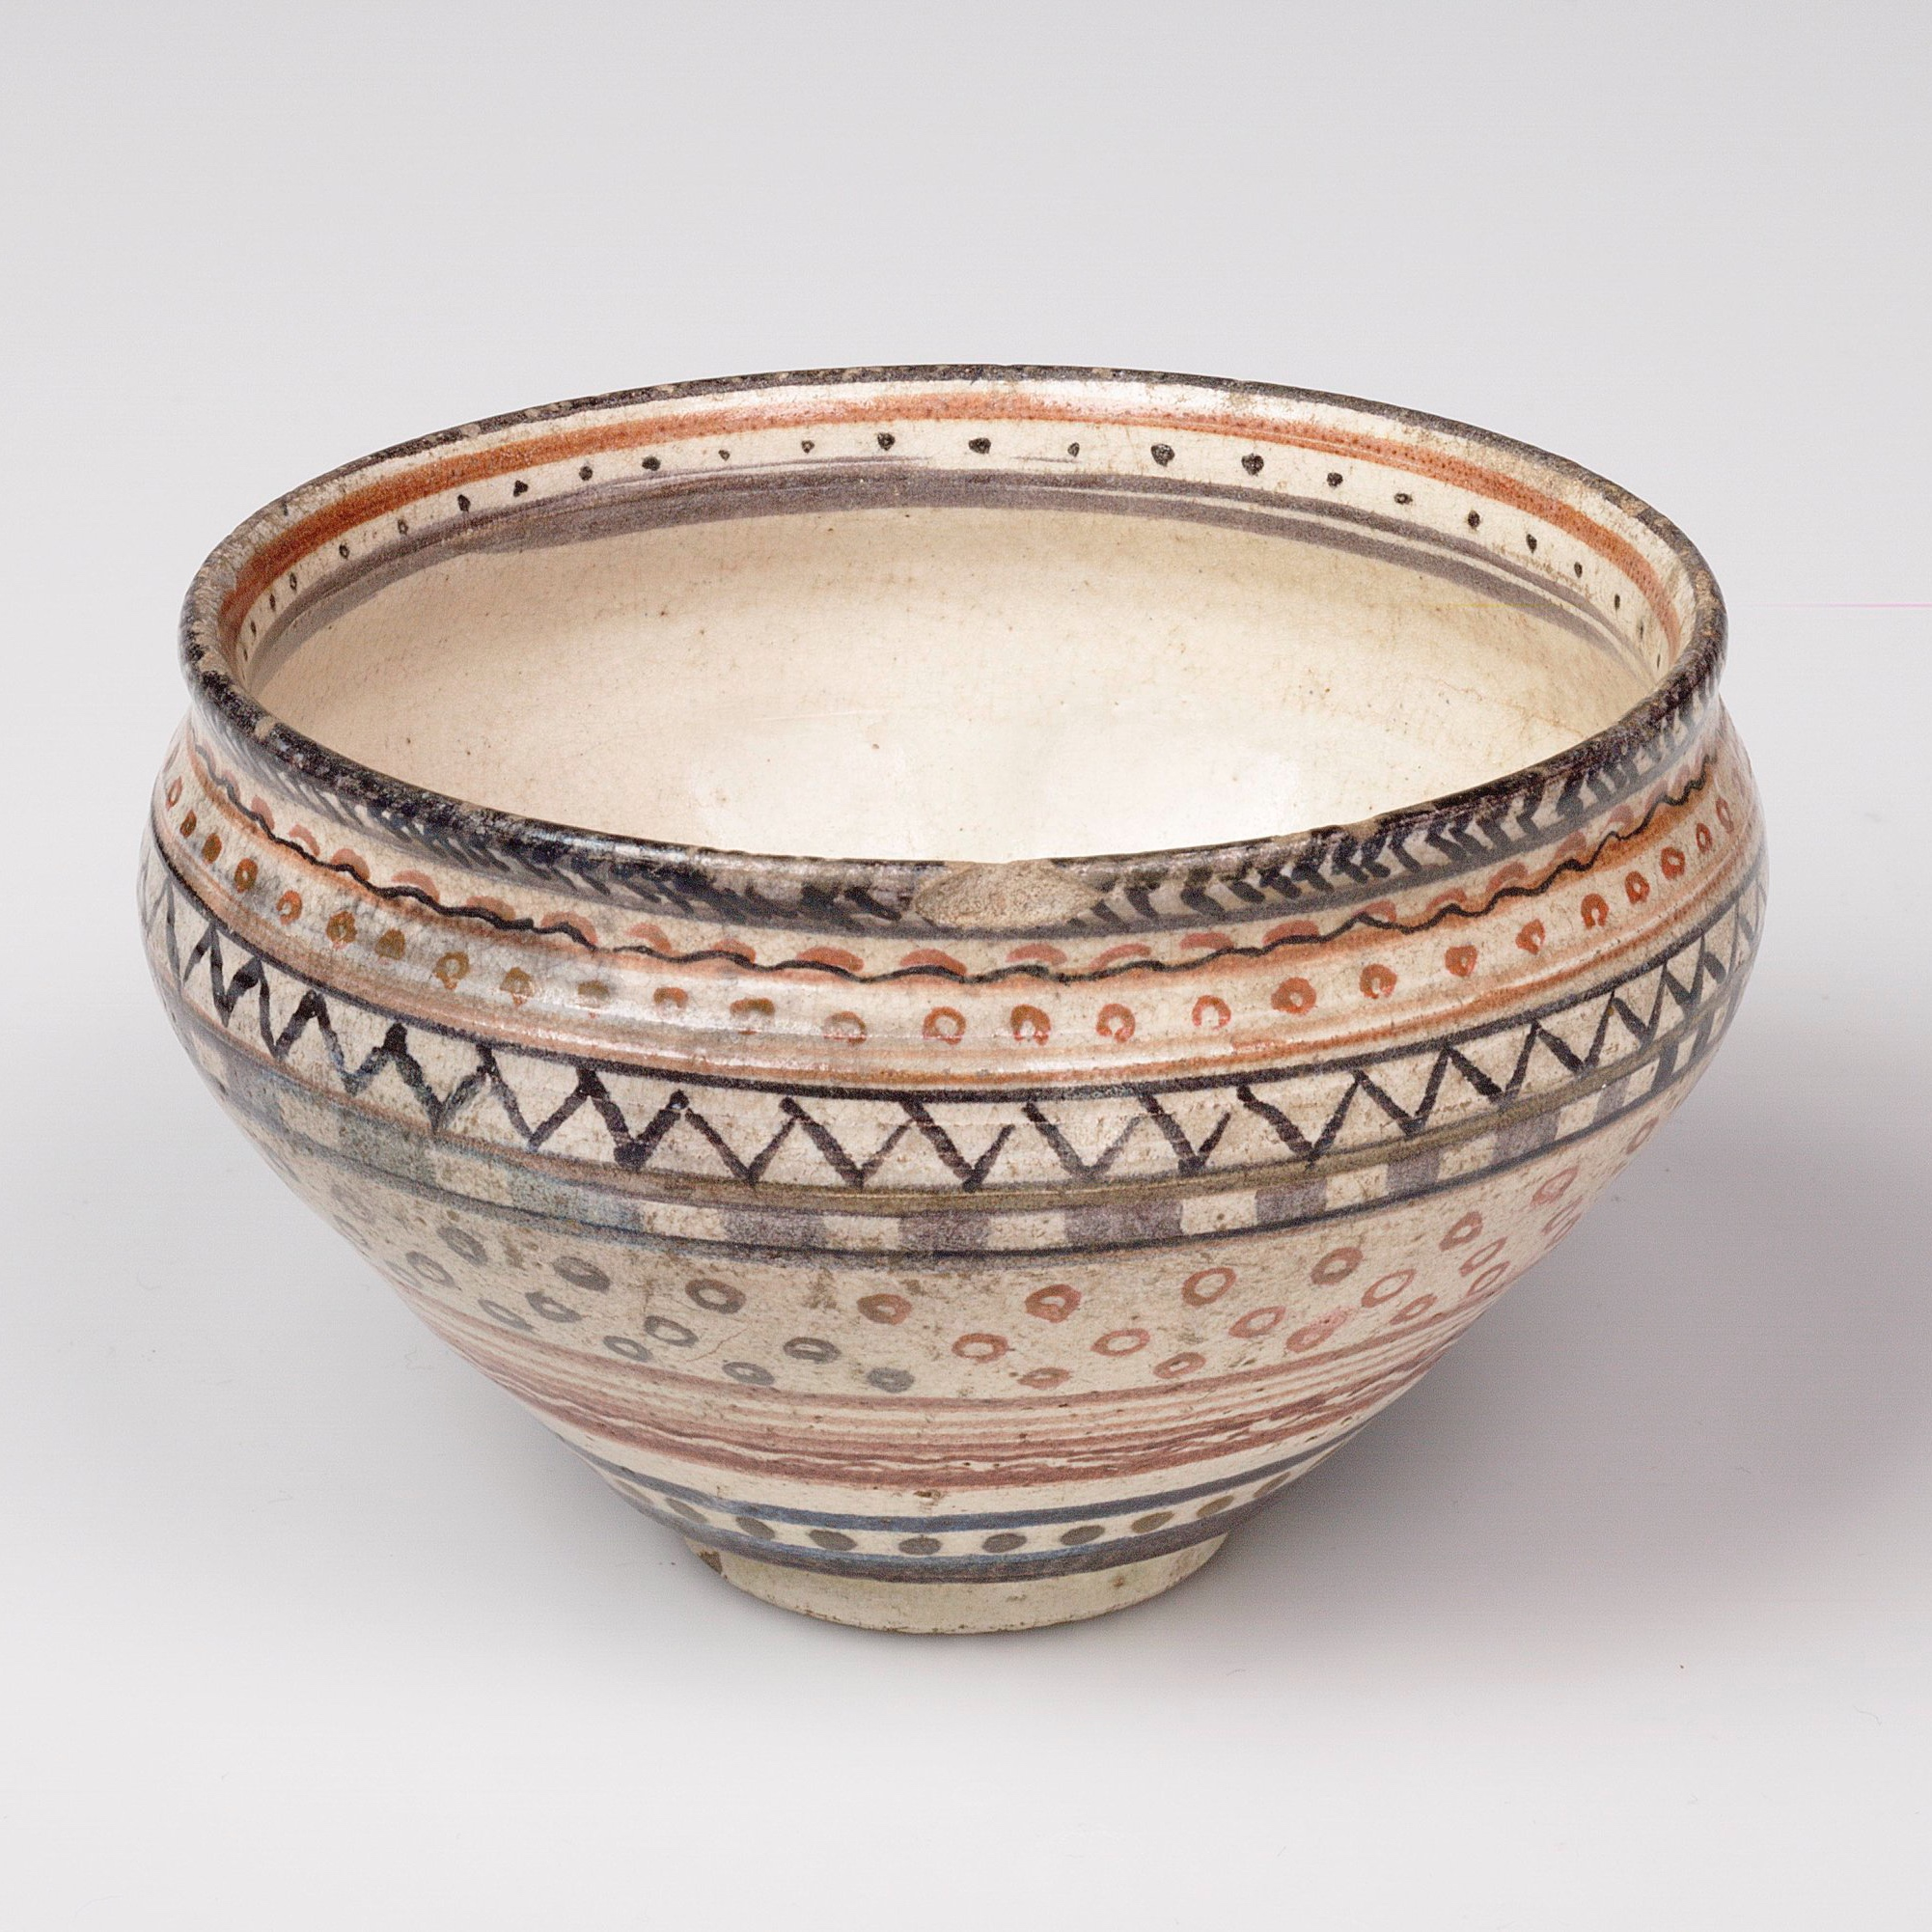 BOWL DECORATED BY BERNARD LEACH